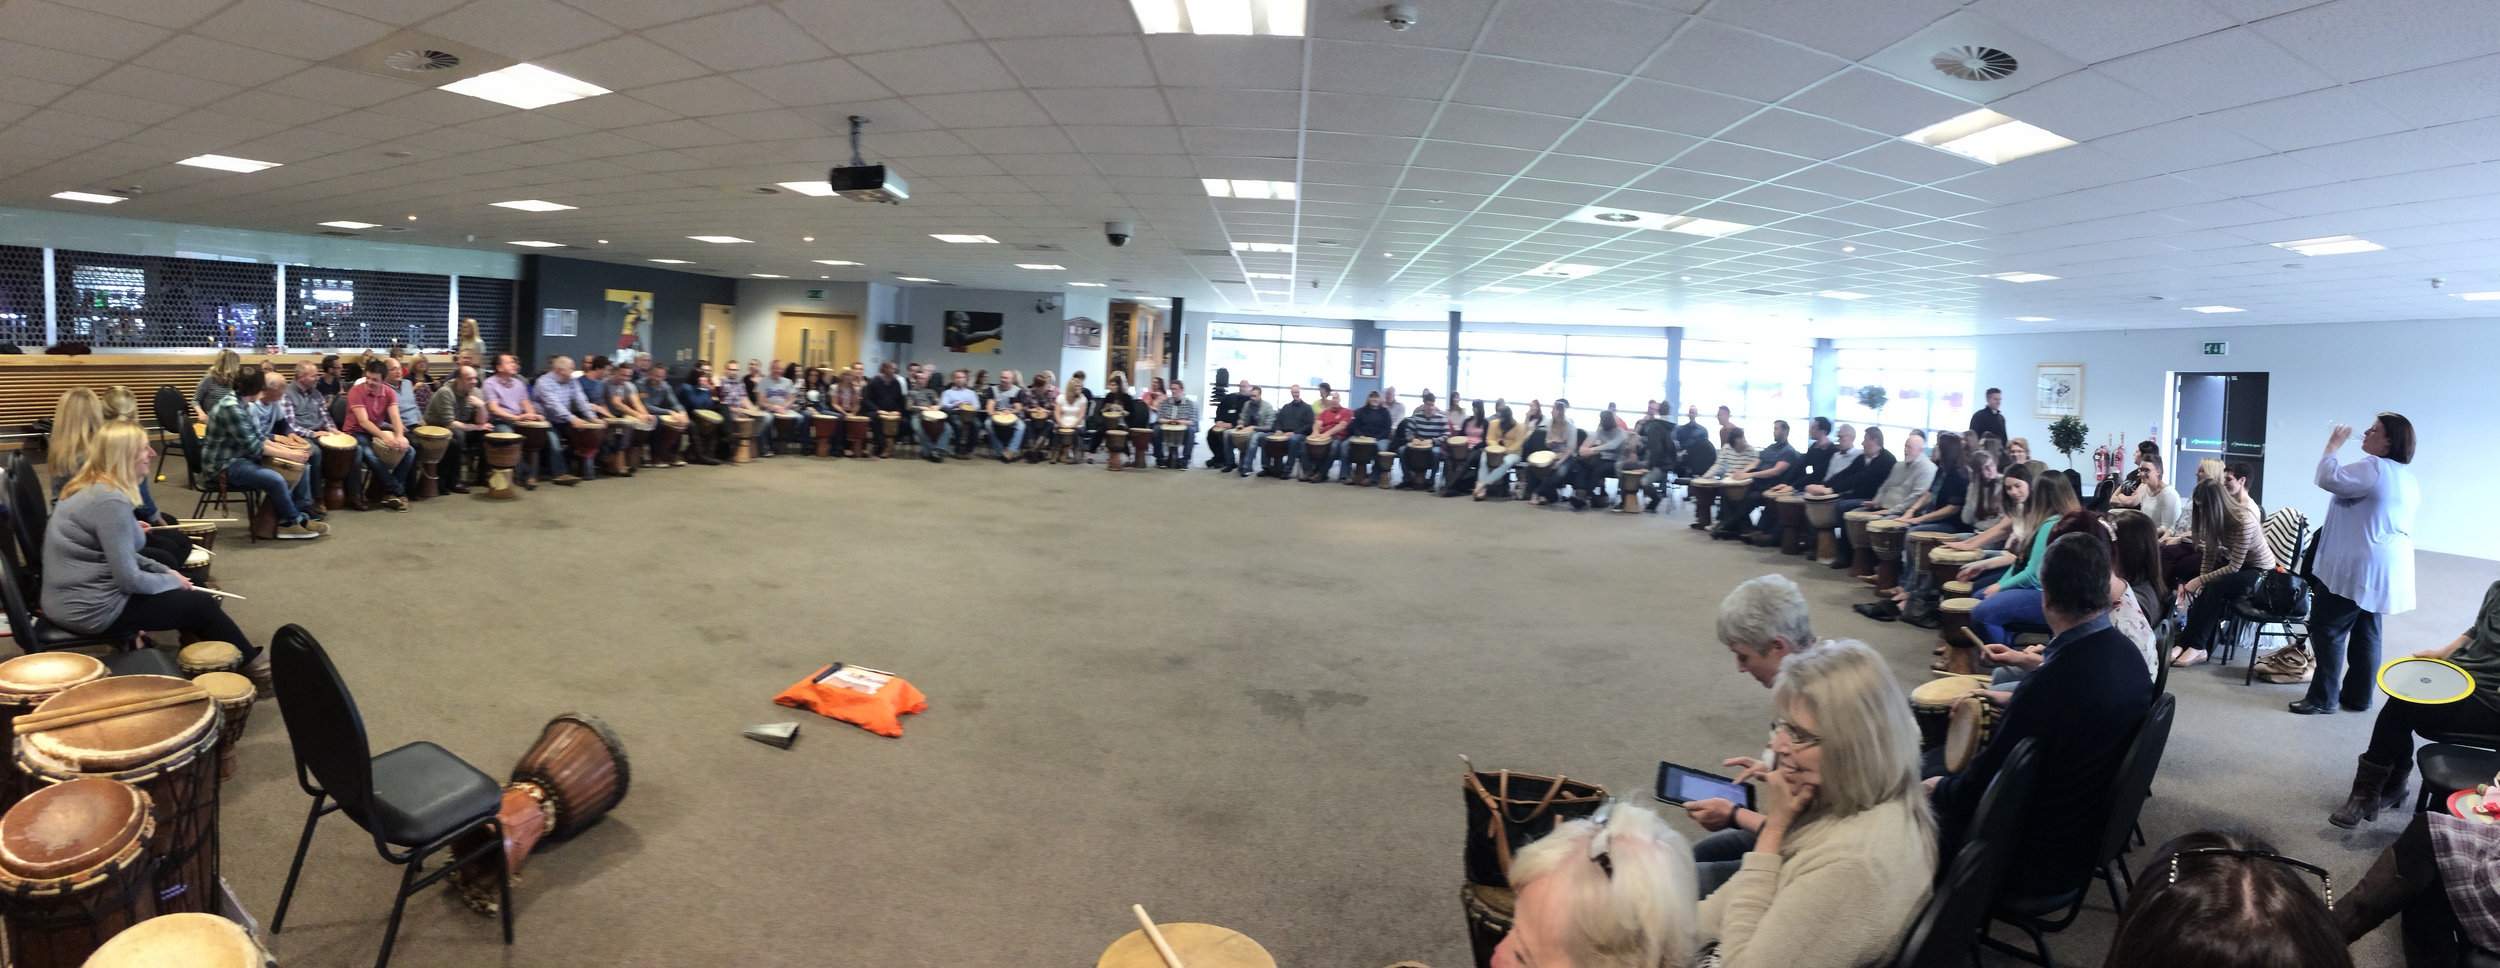 Unbeatable Energy leading a large drumming workshop for Charter Housing Association in Newport, Wales